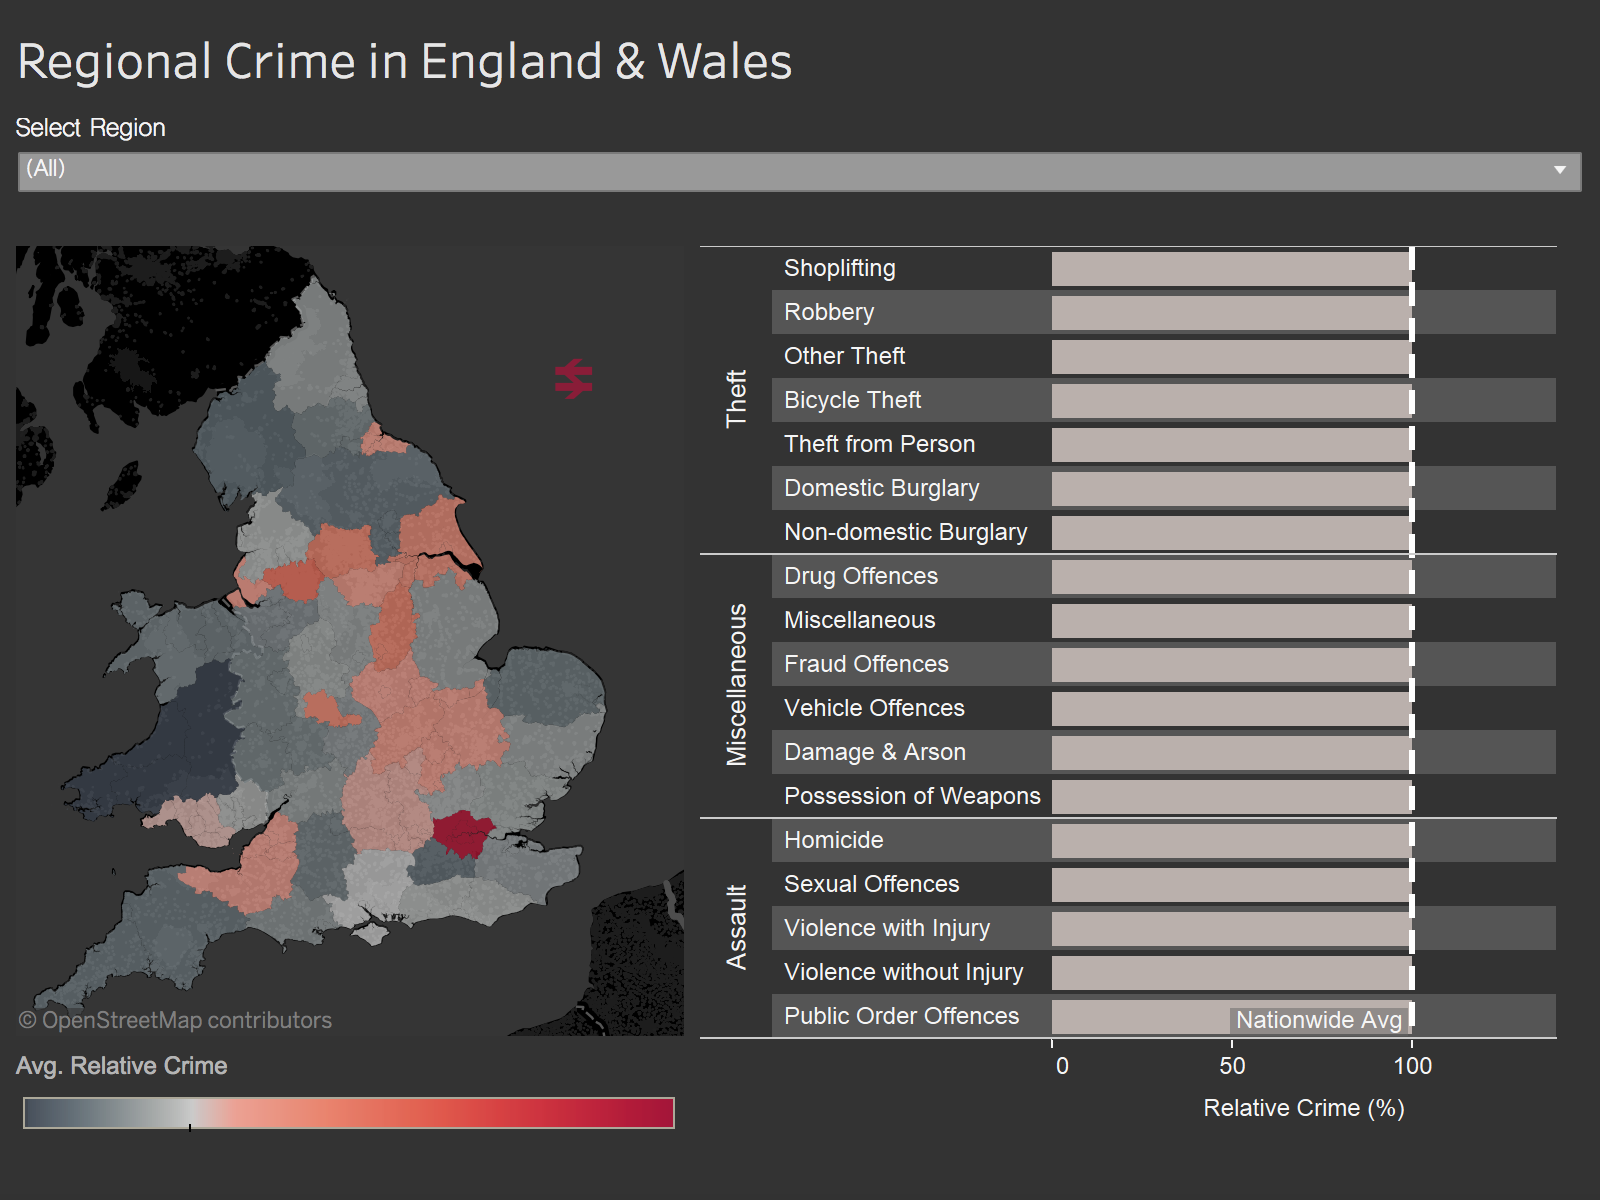 Philip Mannering explores regional crimes in England and Wales